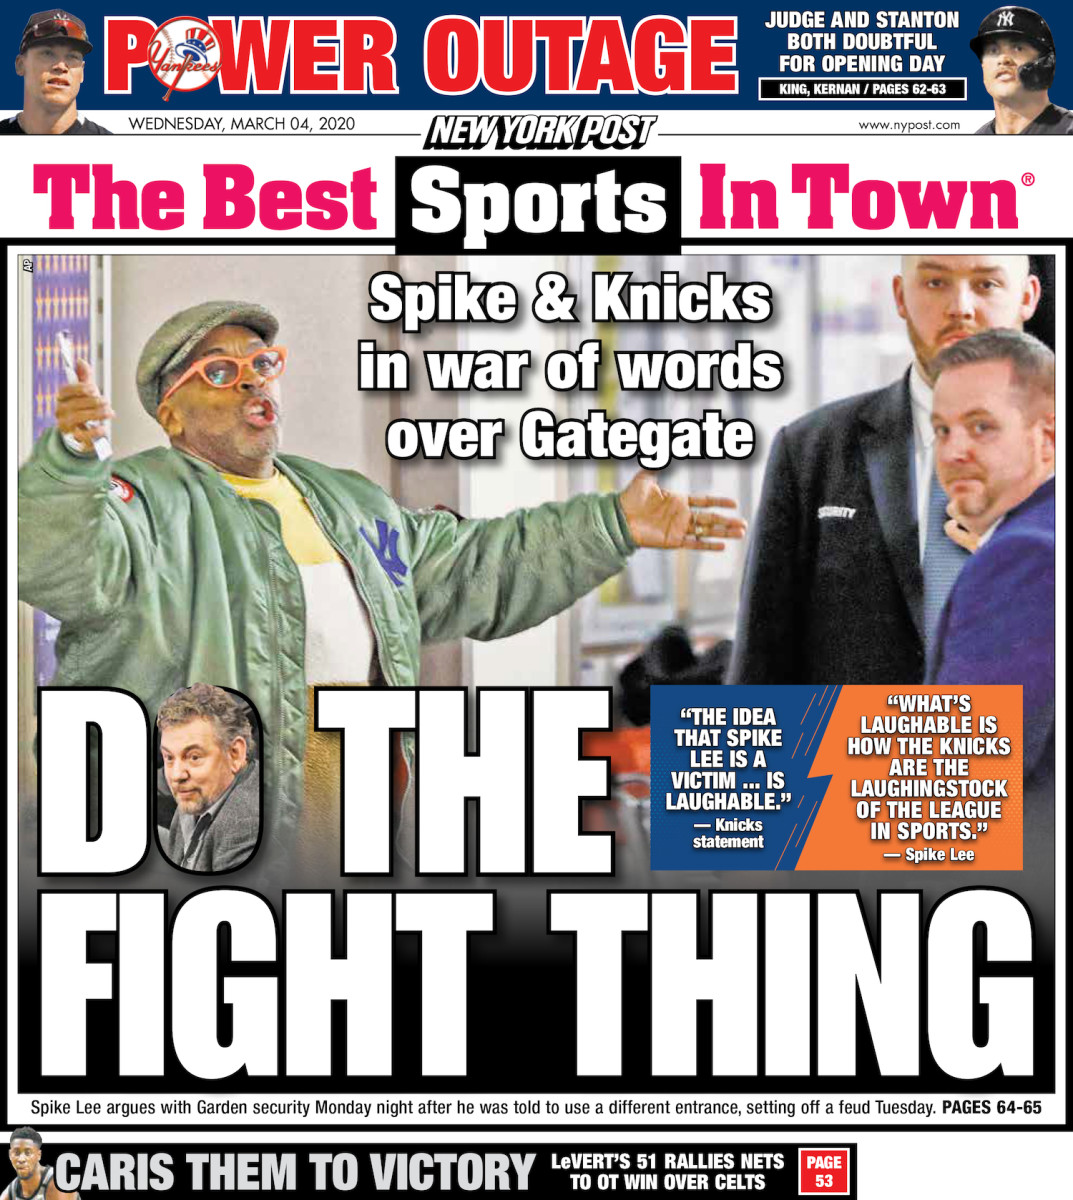 """The back page of the New York Post, featuring the Spike Lee """"Do the Fight Thing"""" headline"""